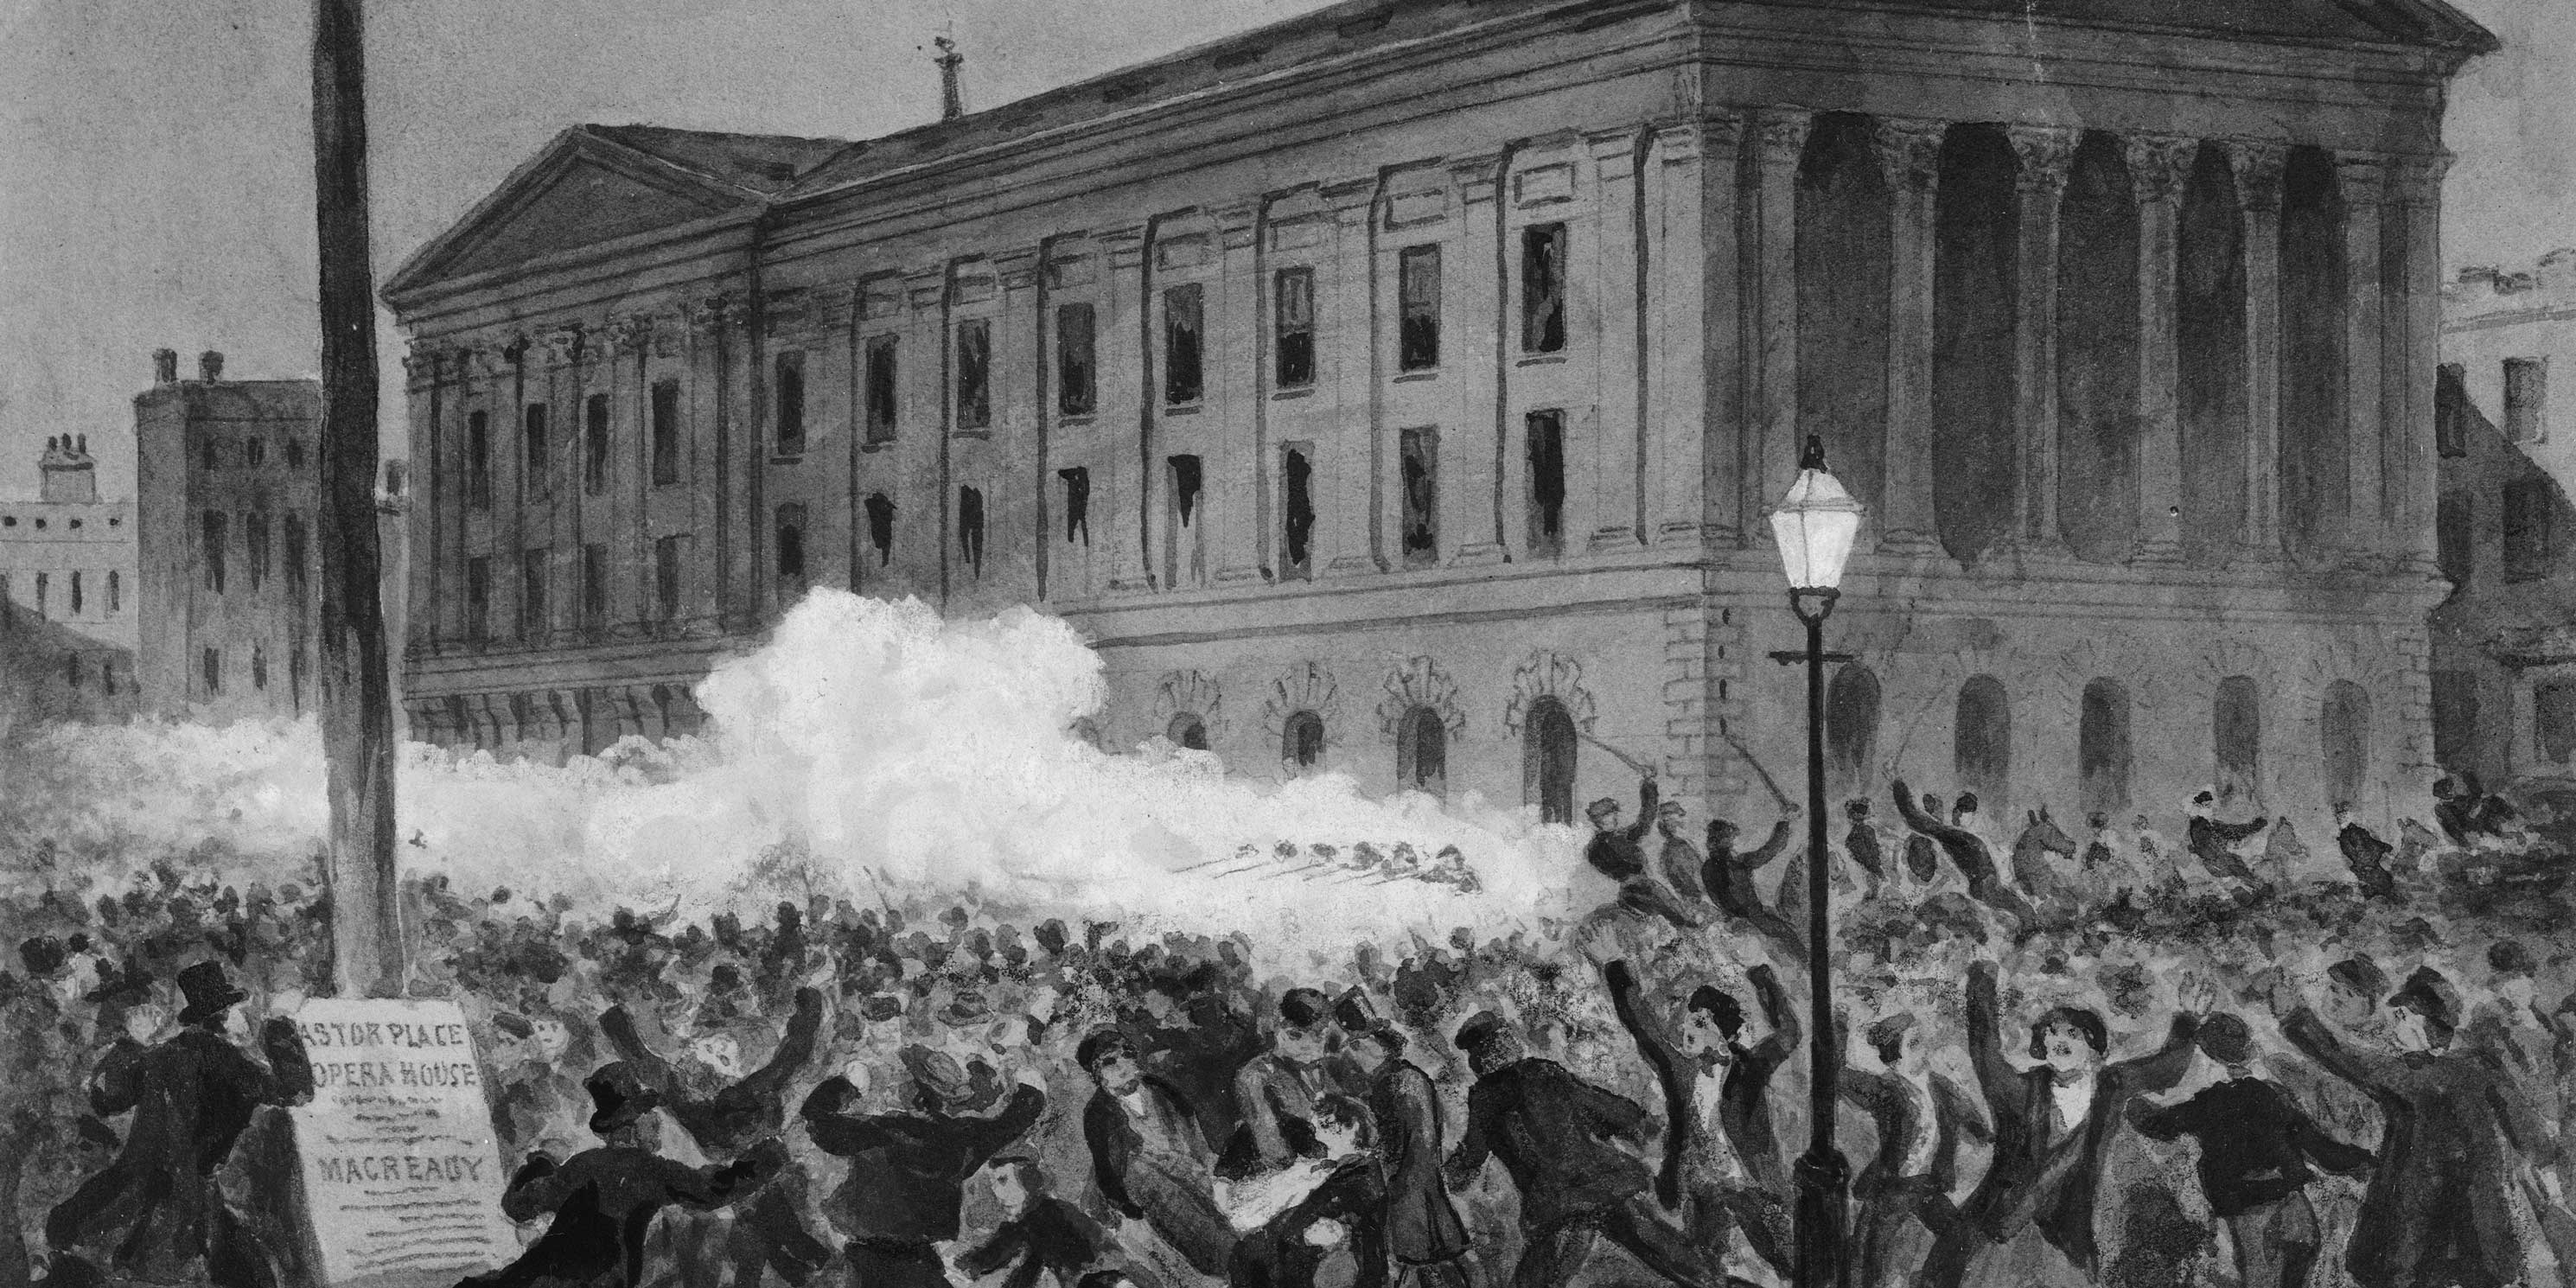 illustration of the Astor Place Riot on May 10, 1849